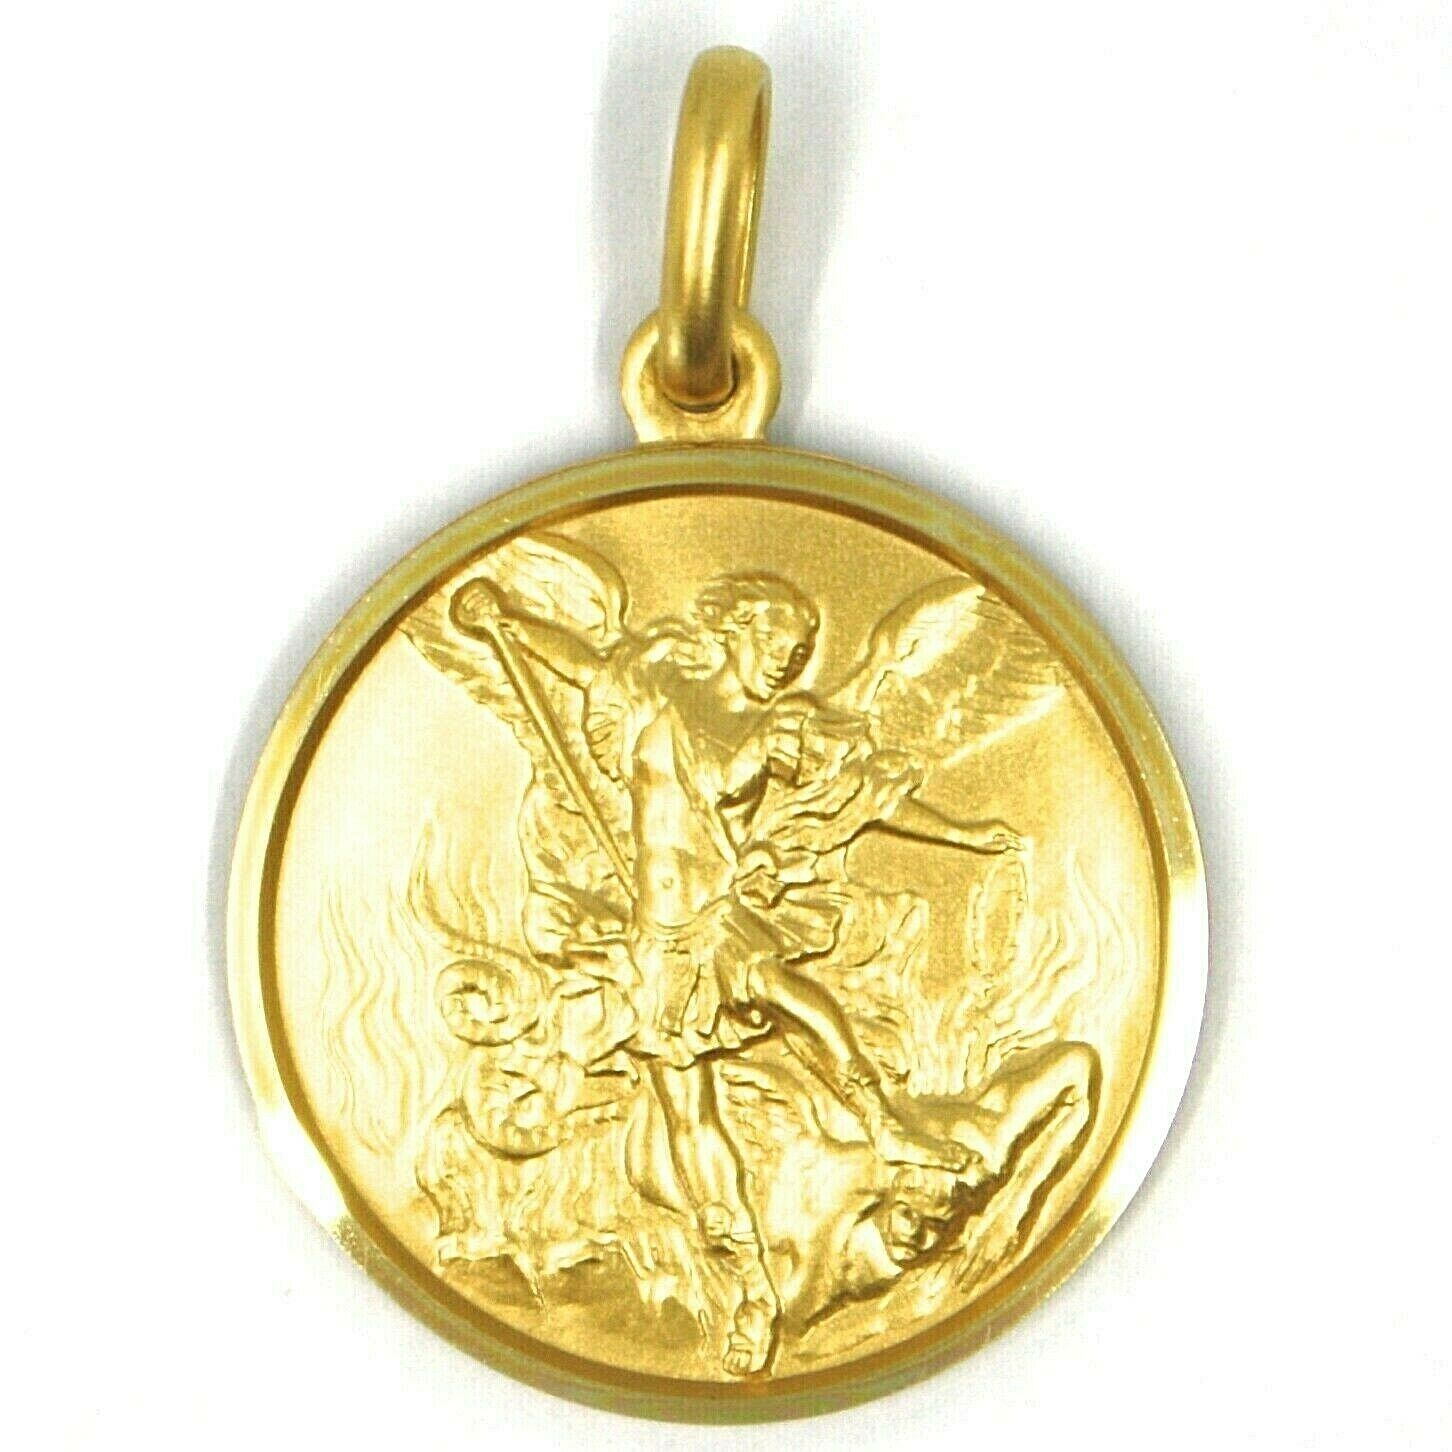 SOLID 18K YELLOW GOLD SAINT MICHAEL ARCHANGEL 23 MM MEDAL, PENDANT MADE IN ITALY